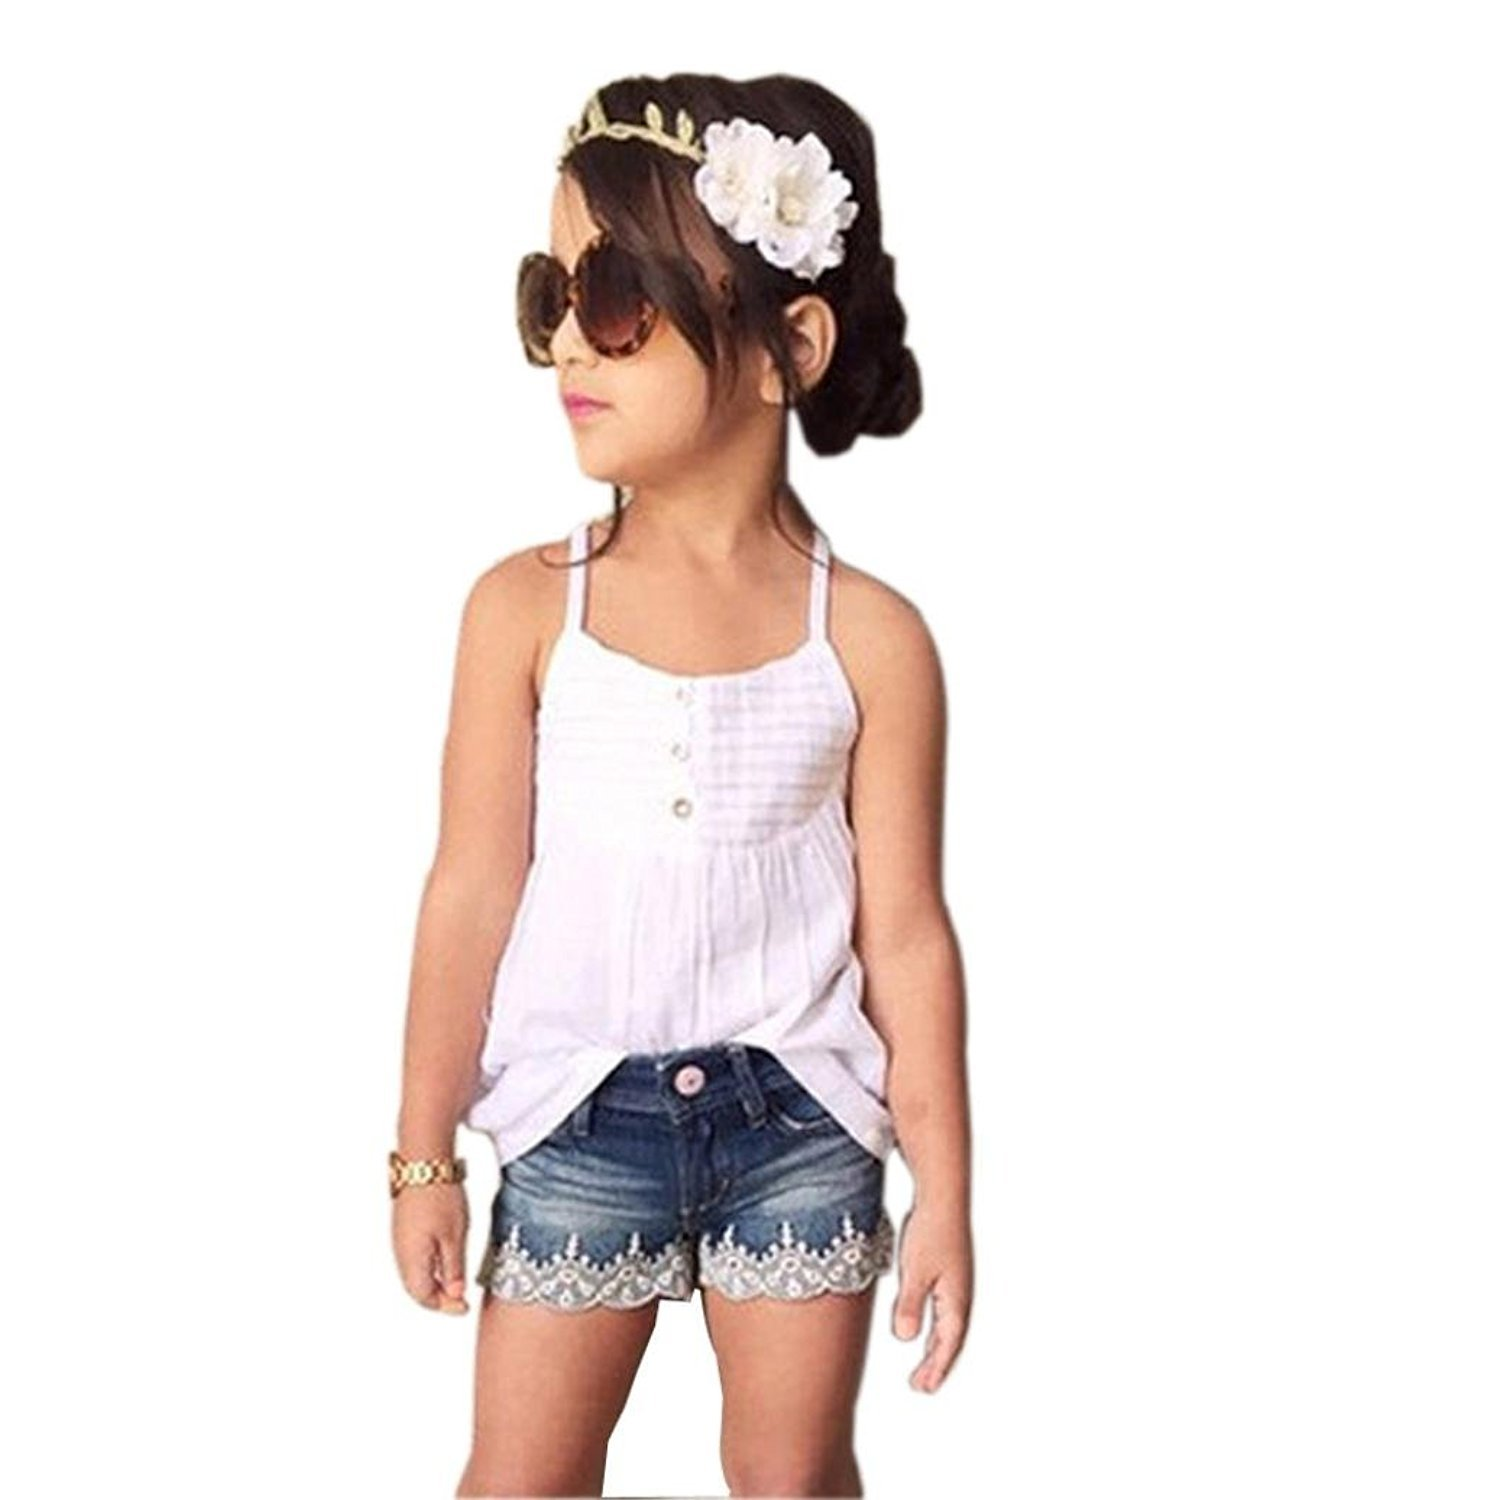 LUQUAN Little Girls Outfits Set Halter Tank Top T-Shirt Dress Jeans Pants Clothes 8-9 Years